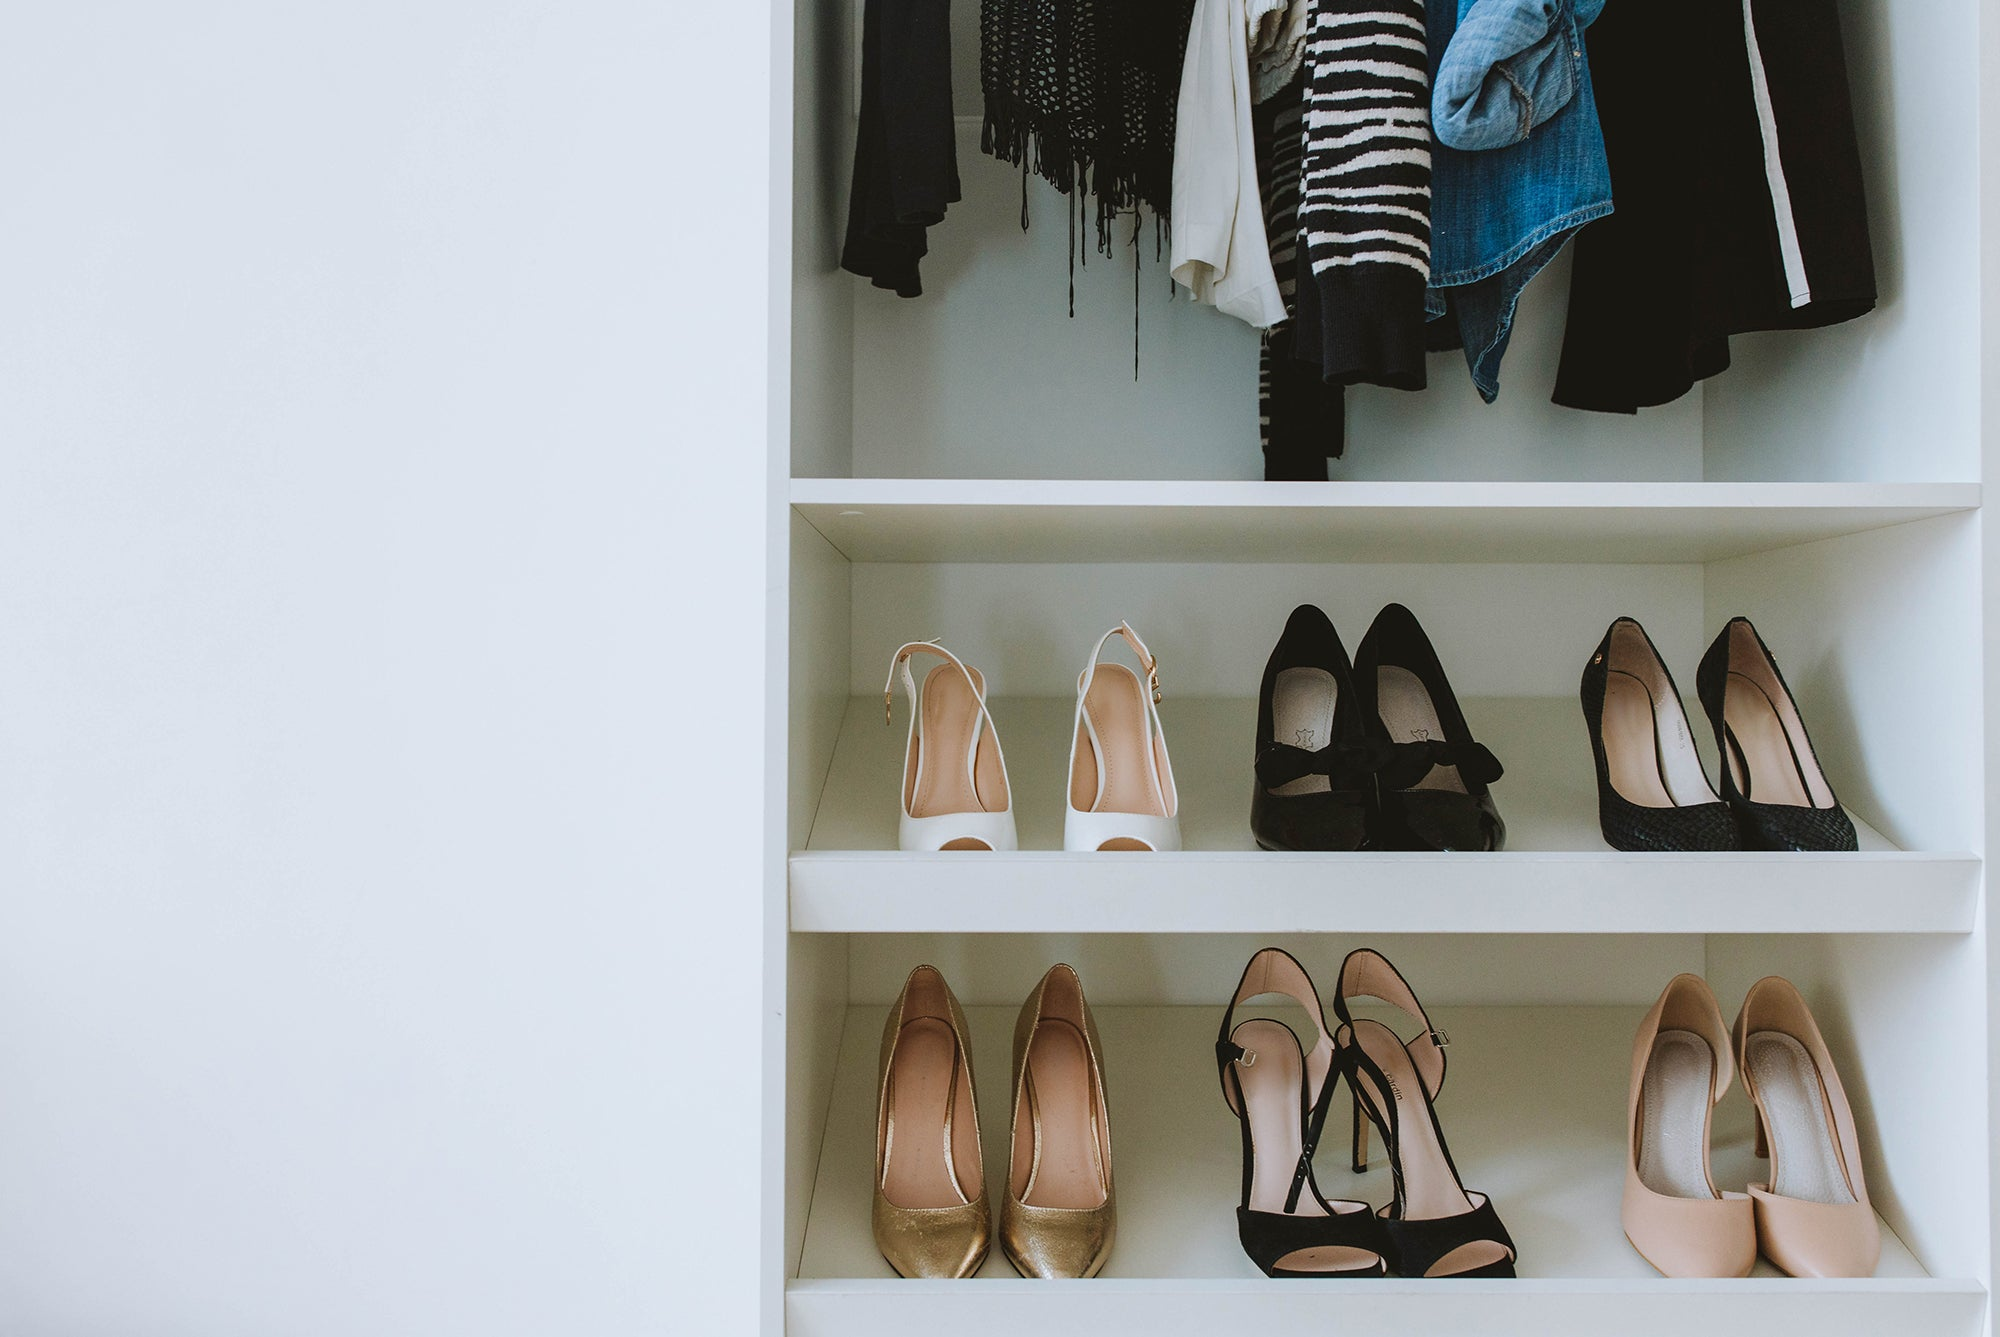 high heels sitting on a shoe rack